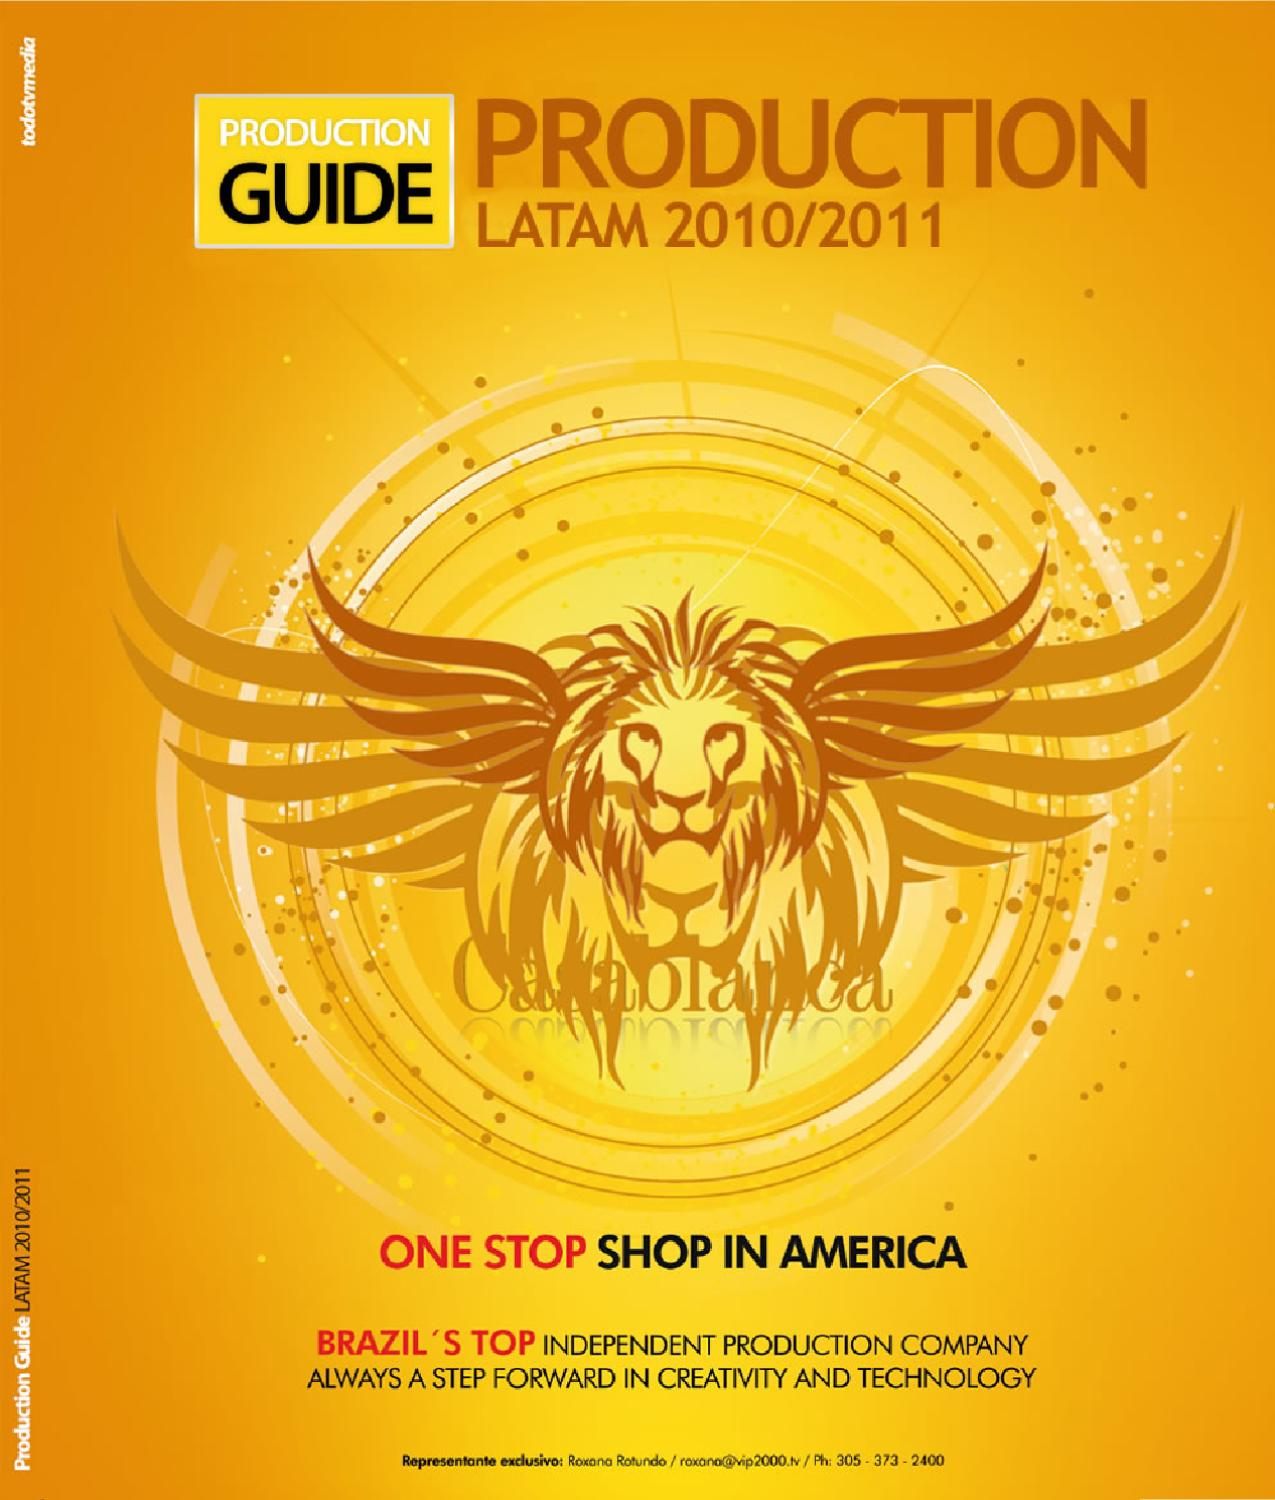 Production Guide | Latam 2010/2011 by TodotvMedia - issuu